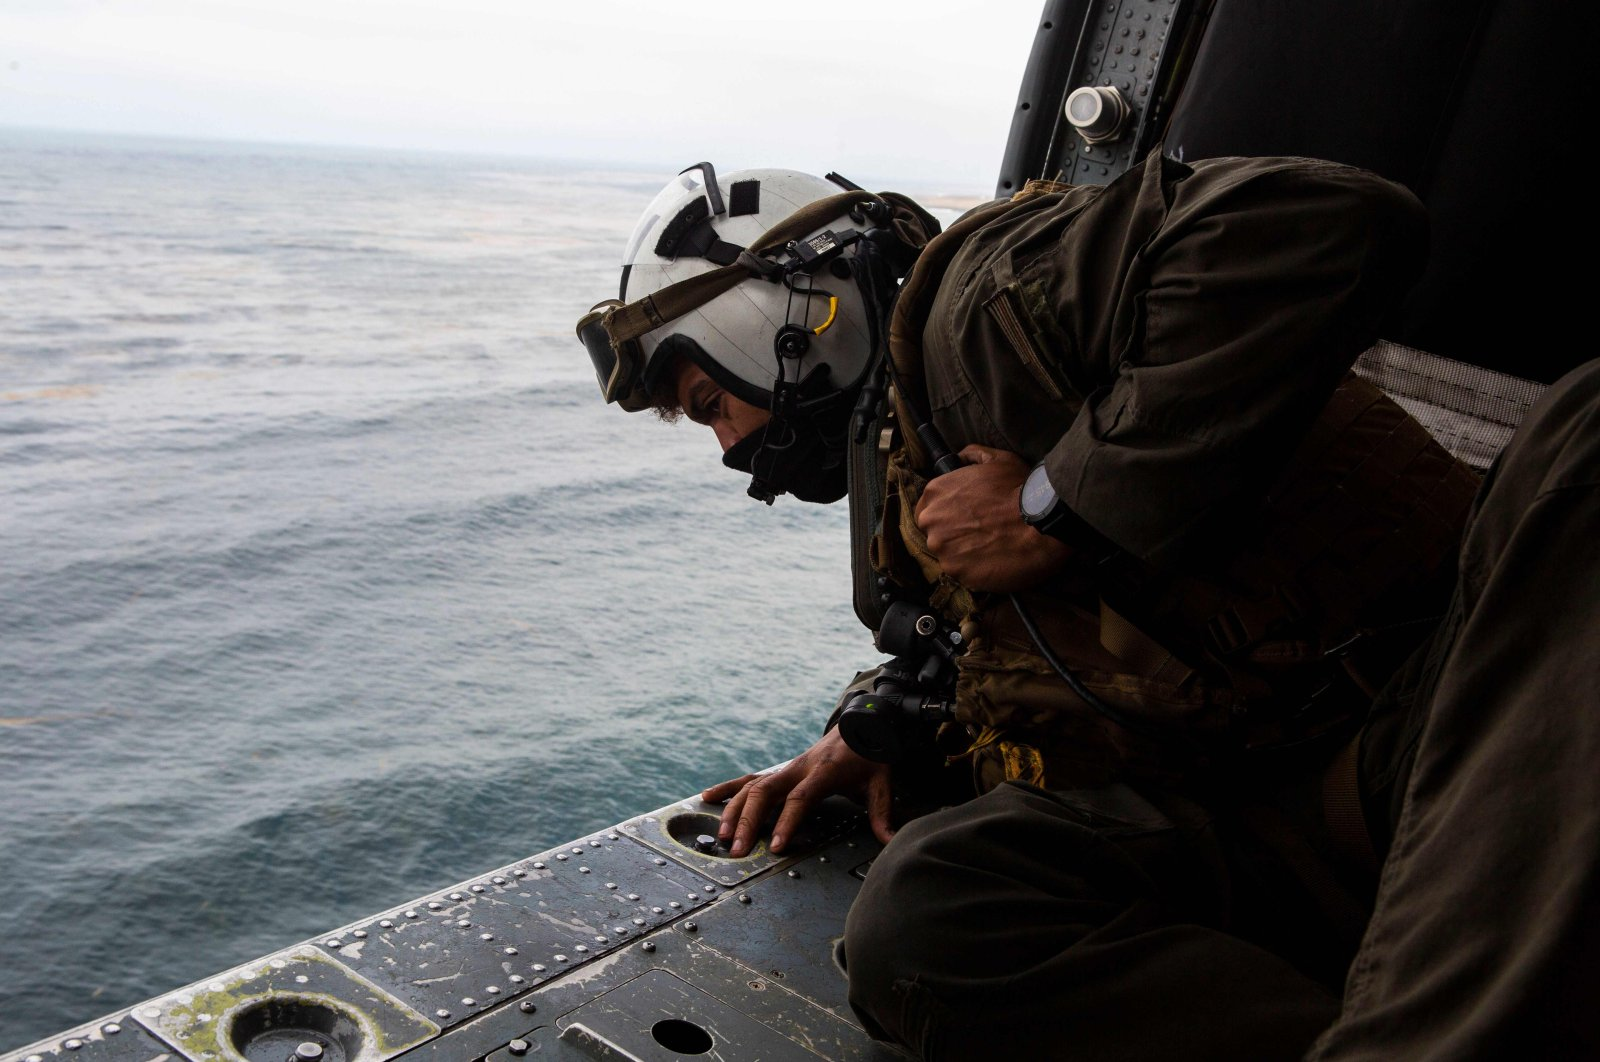 Naval Air Crewman (Helicopter) 2nd Class Joseph Rivera, a search and rescue swimmer assigned to the amphibious assault ship USS Makin Island (LHD-8) looks out of a U.S. Navy MH-60 Seahawk while conducting search and rescue relief operations following an AAV-P7/A1 assault amphibious vehicle mishap off the coast of Southern California, July 30, 2020. (U.S. Marine Corps photo via AFP)